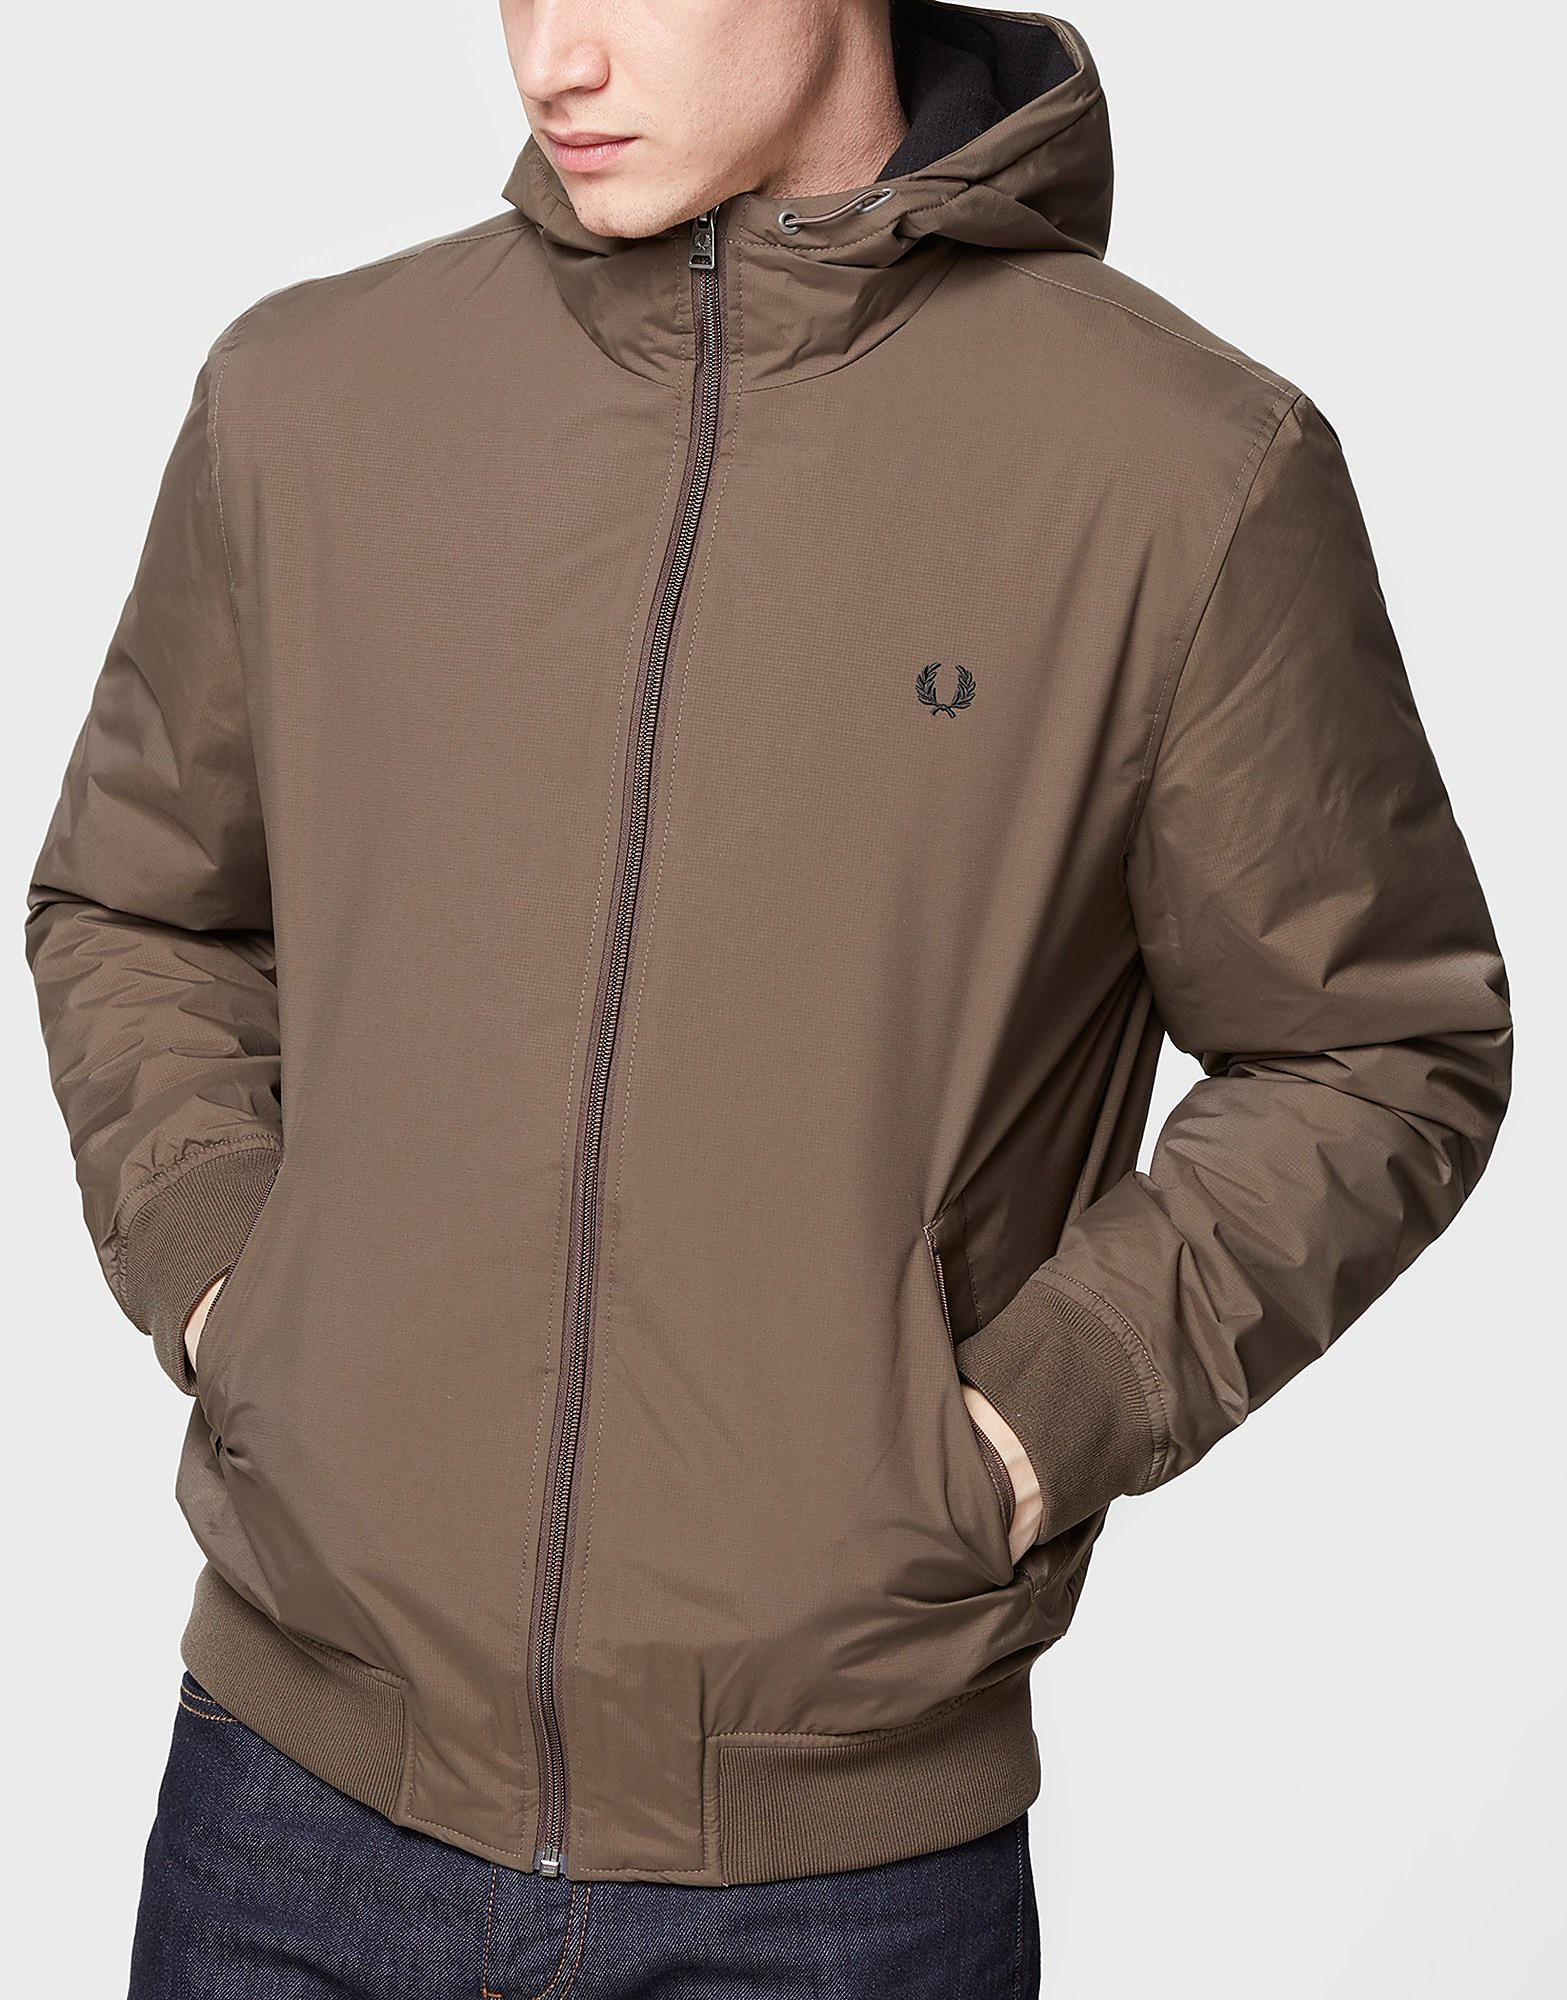 top 30 cheapest fred perry jacket uk prices best deals. Black Bedroom Furniture Sets. Home Design Ideas